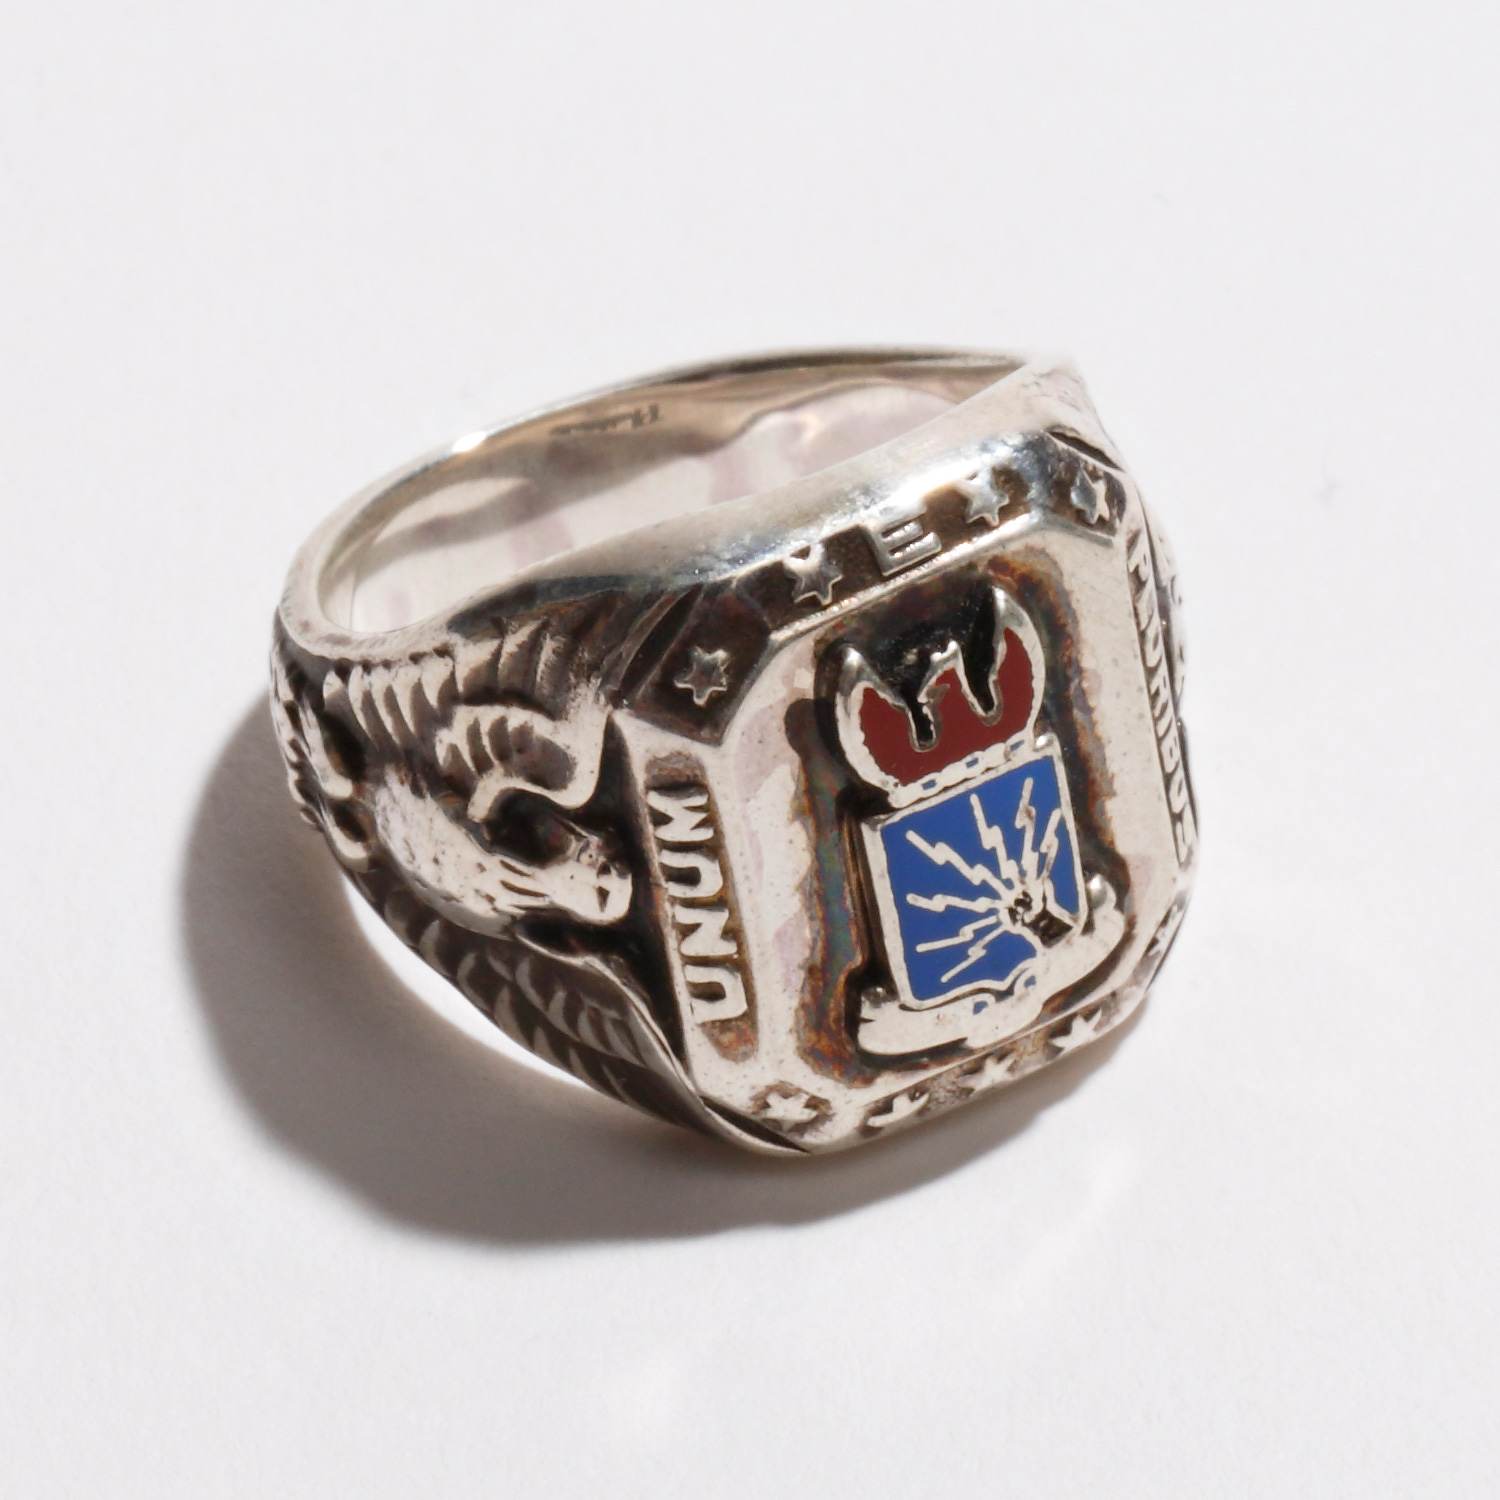 A.F.COMMAND RING